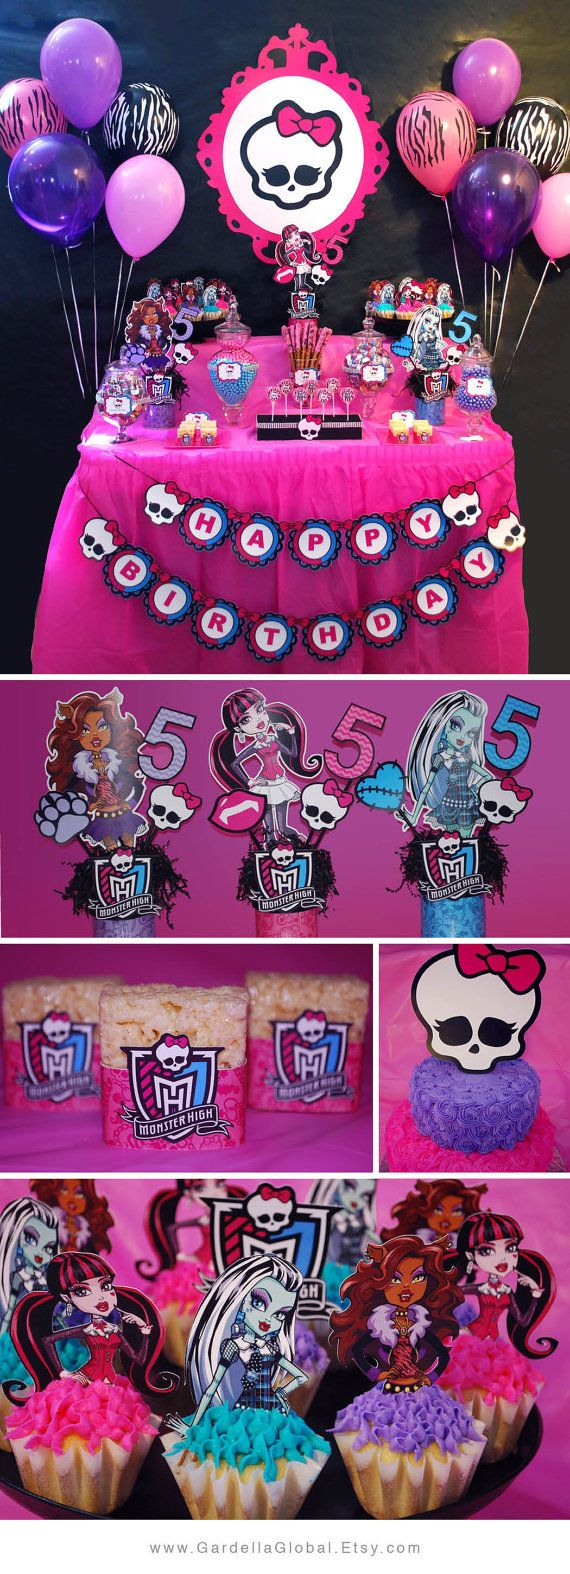 handmadest birthday party invitations%0A Monster High Invitation Monster High invite por GardellaGlobal    Monster  High Birthday CakeMonster